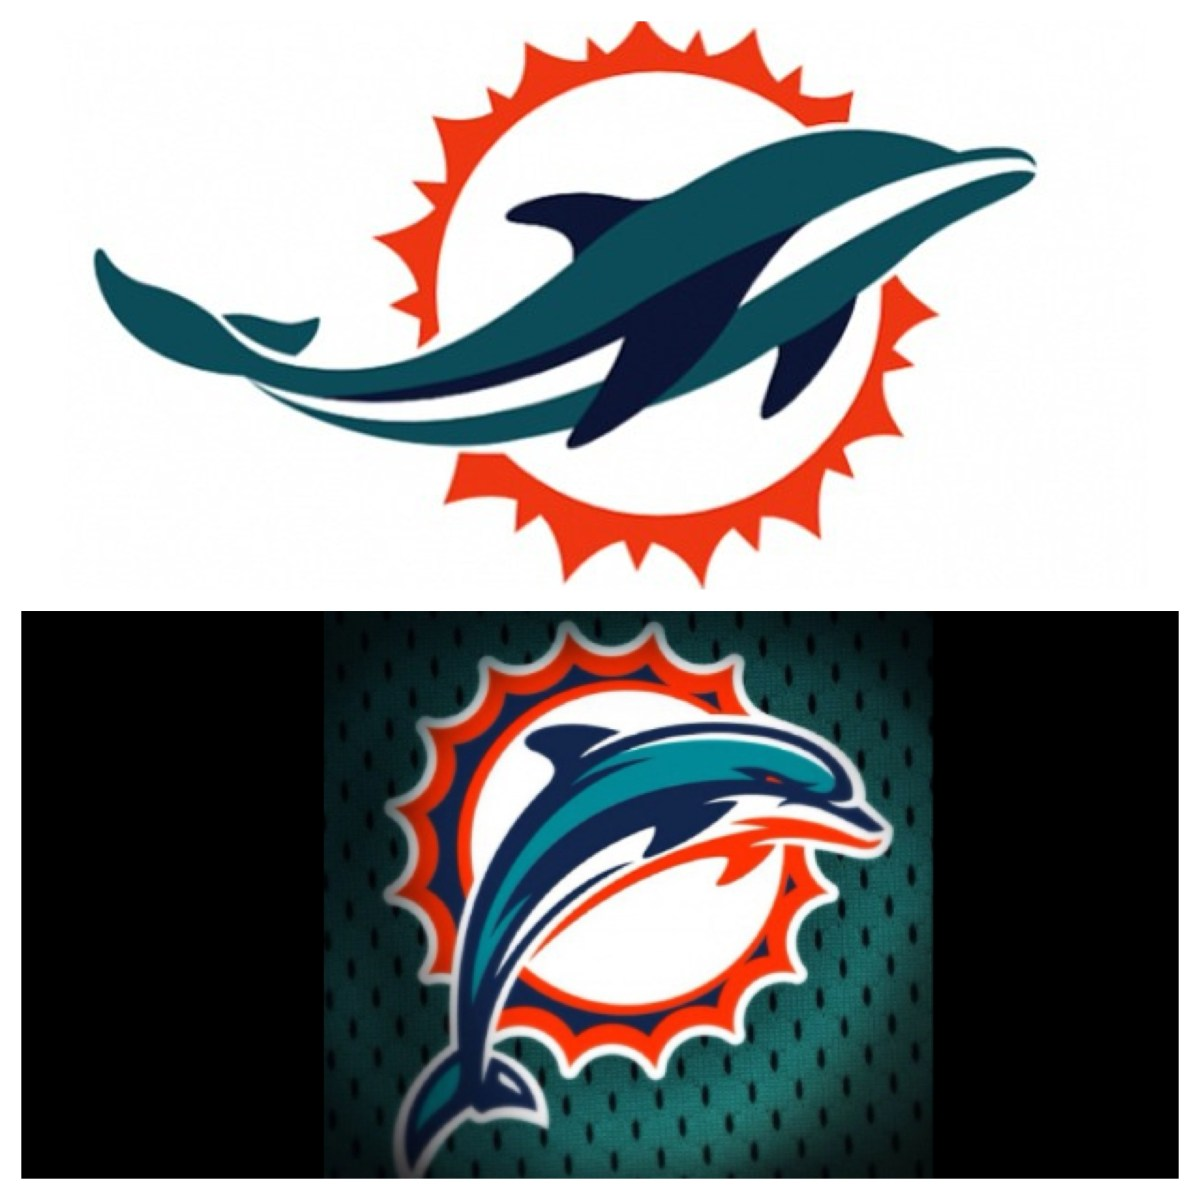 SPORTS: Miami Dolphins Logo?